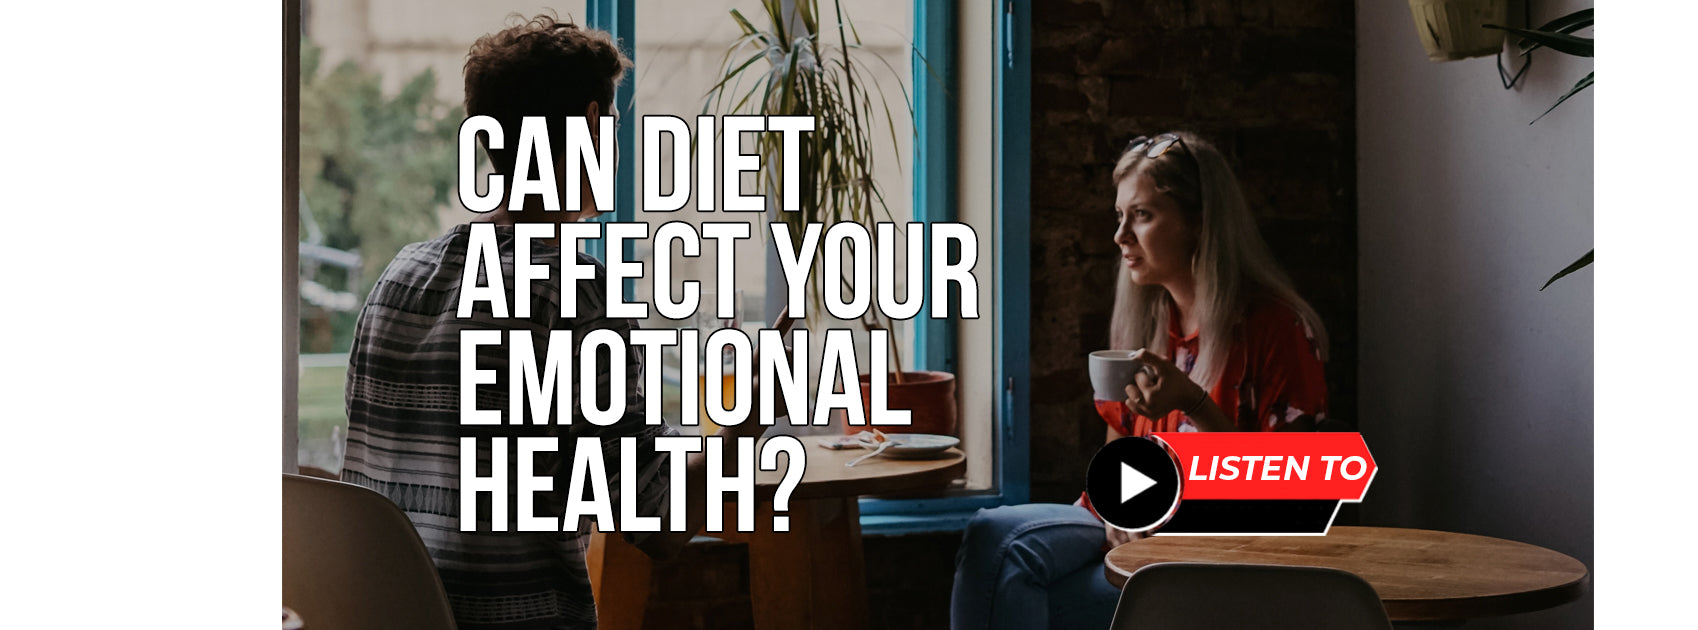 How Could Diet Affect Your Emotional Health?